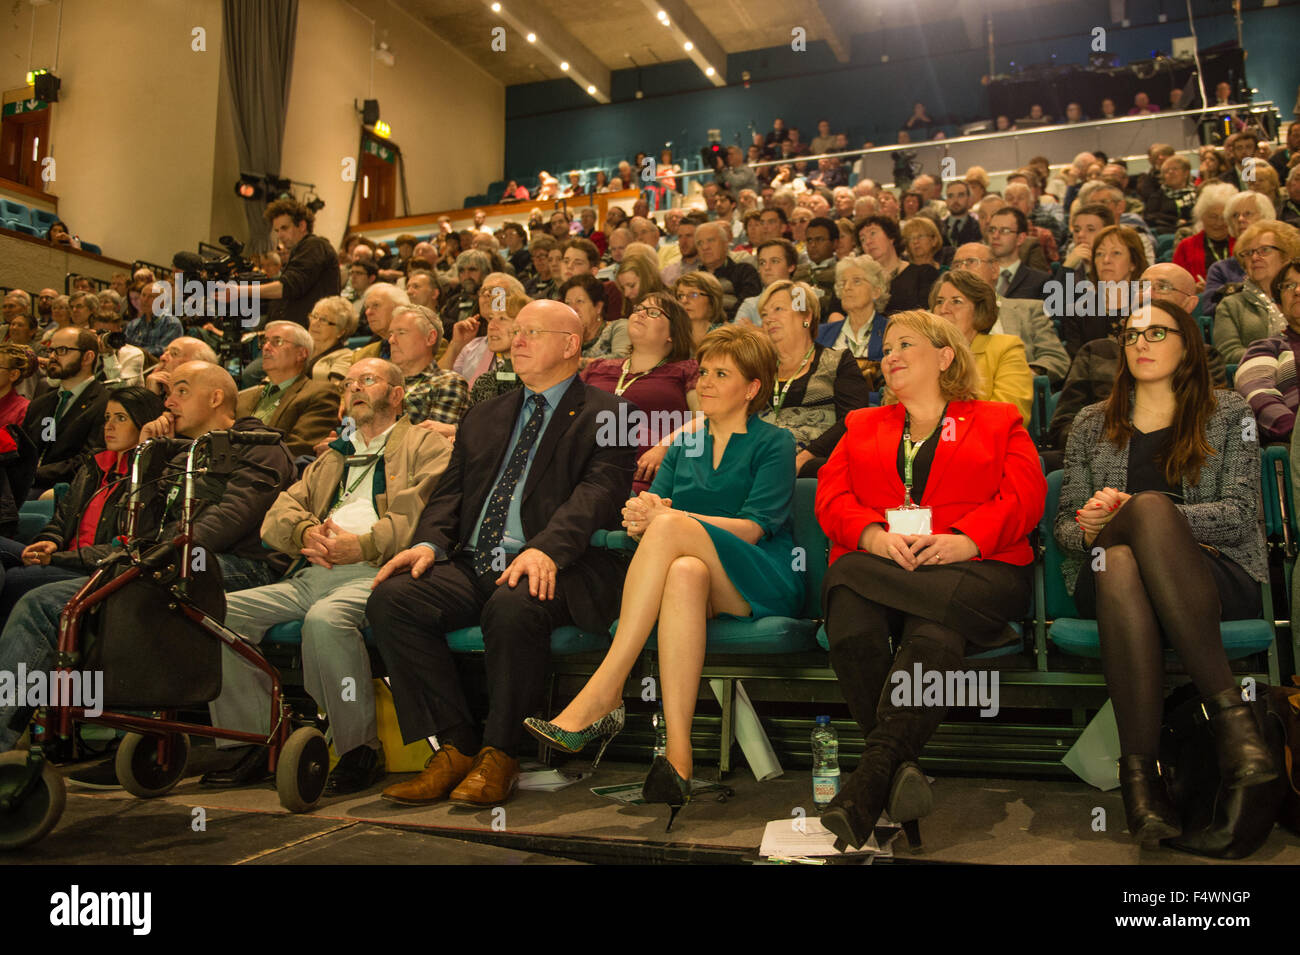 Aberystwyth Wales UK, Friday 23 October 2015  UK Politics: Scotland's First Minister and leader of the Scottish - Stock Image